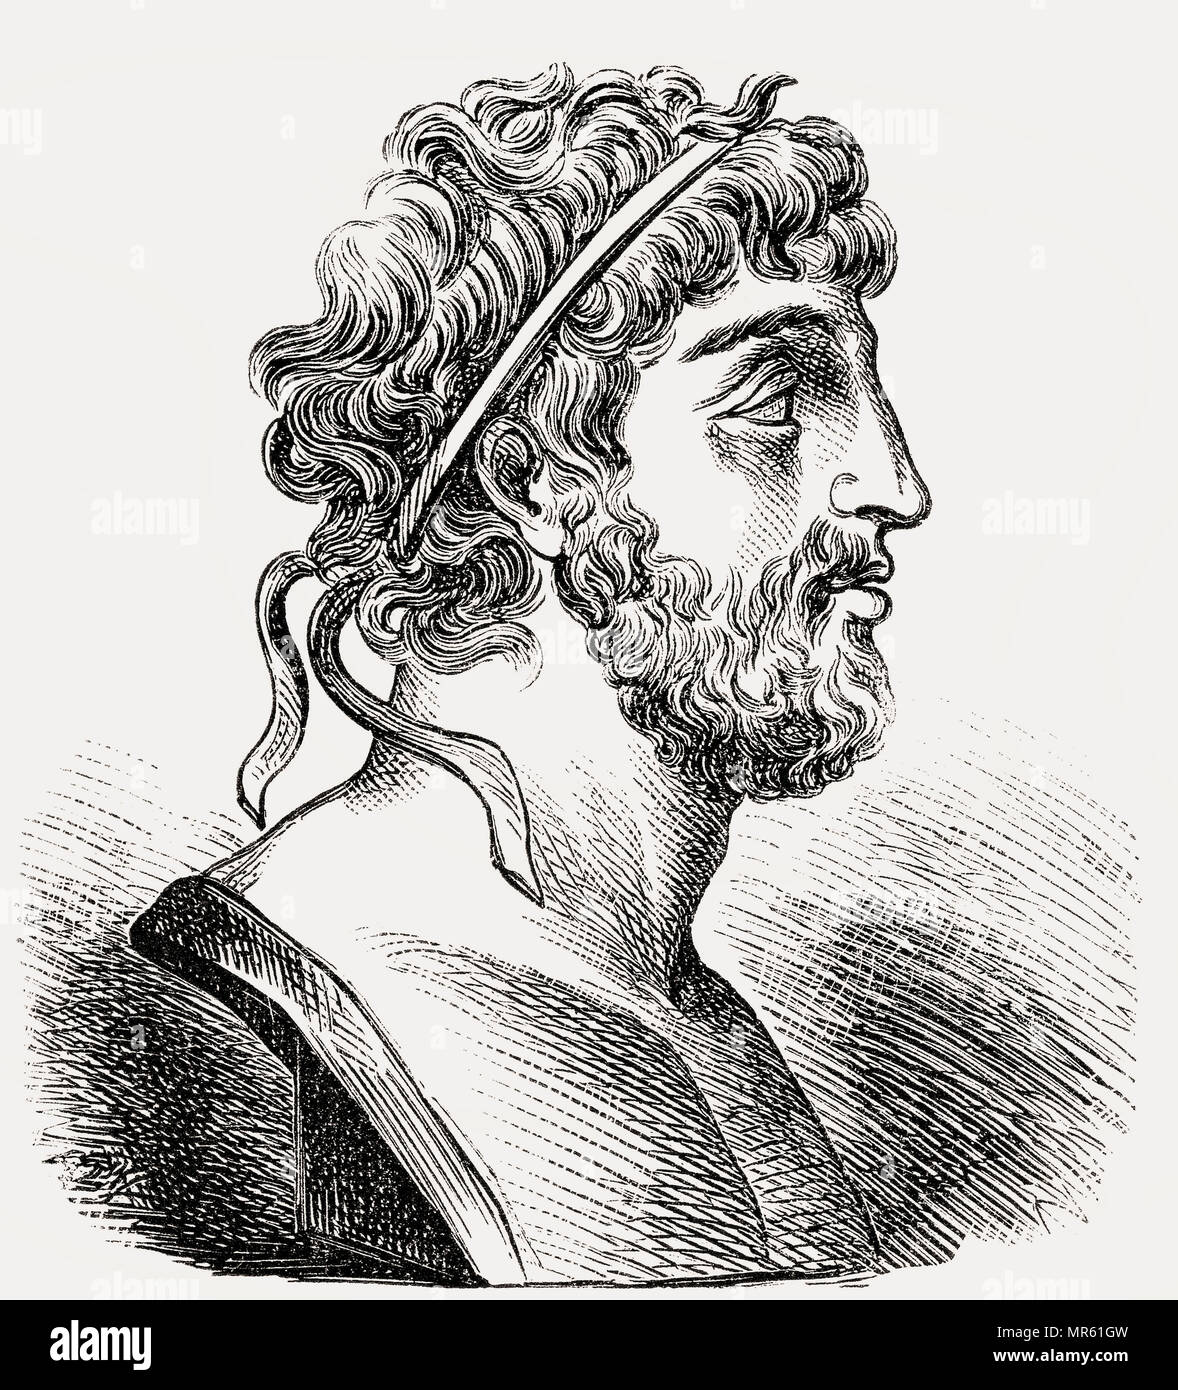 Philip V, 238–179 BC, King of the ancient kingdom of Macedonia from 221 to 179 BC - Stock Image